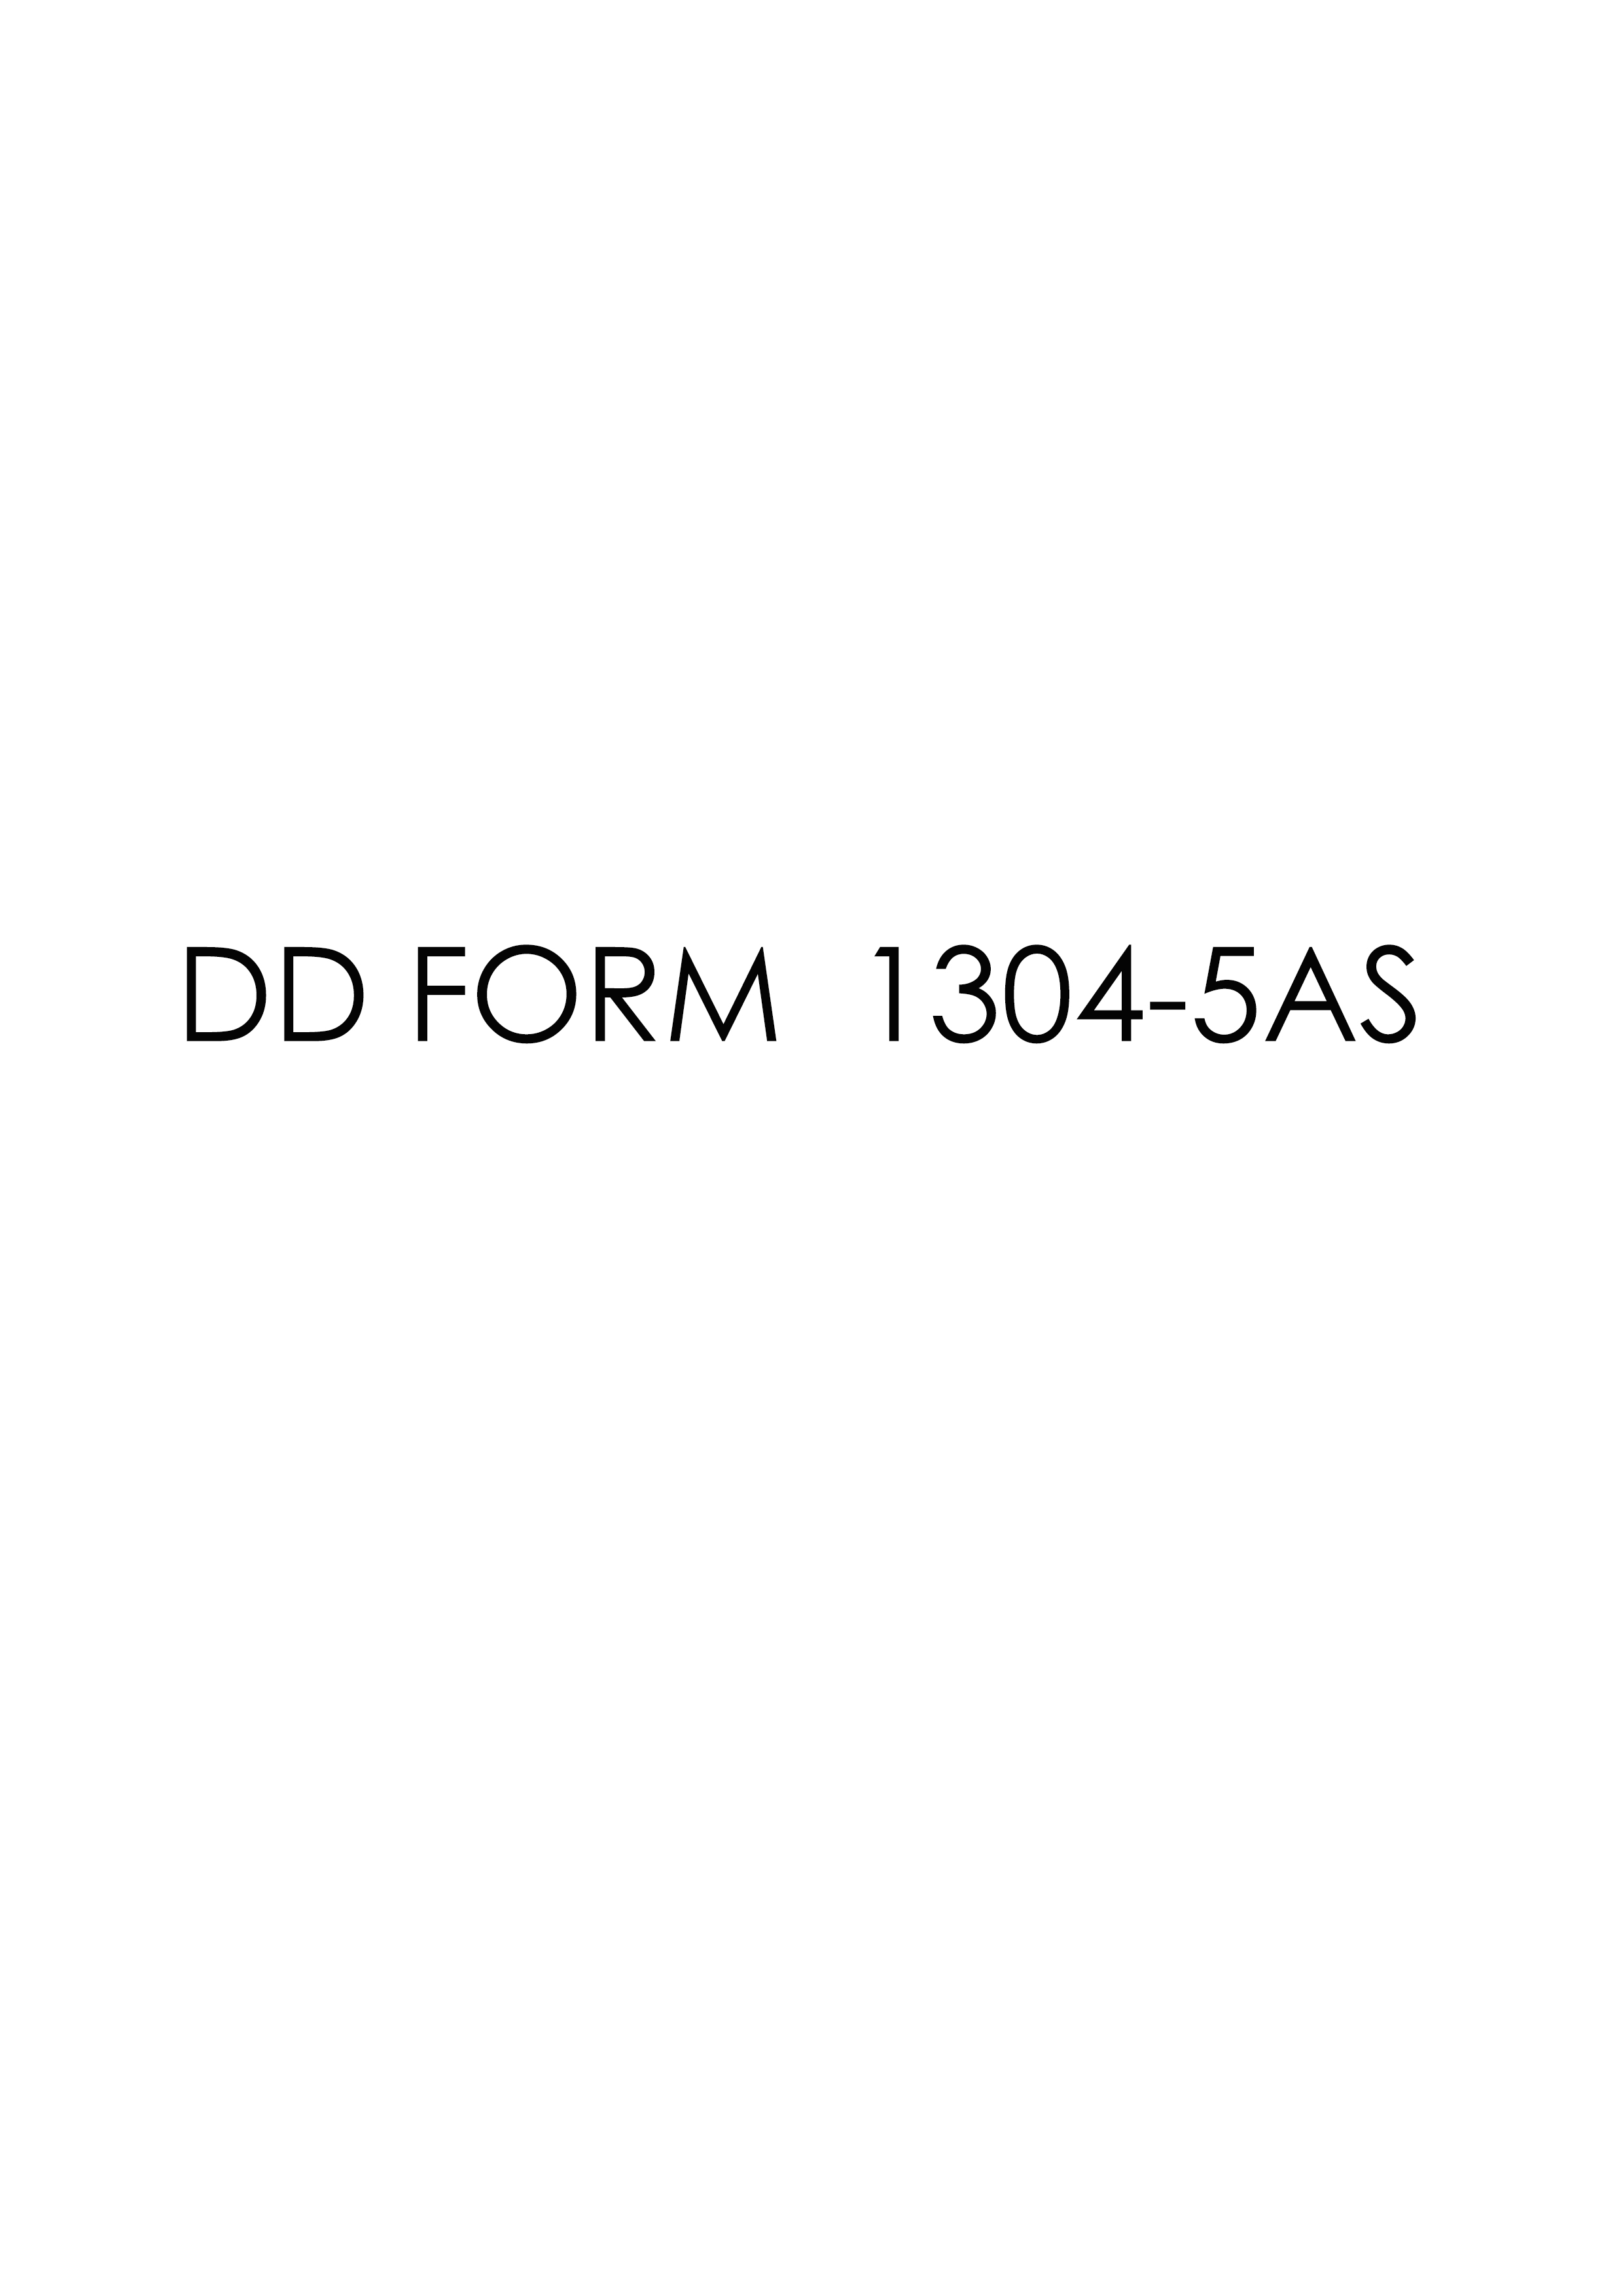 Download dd Form 1304-5AS Free